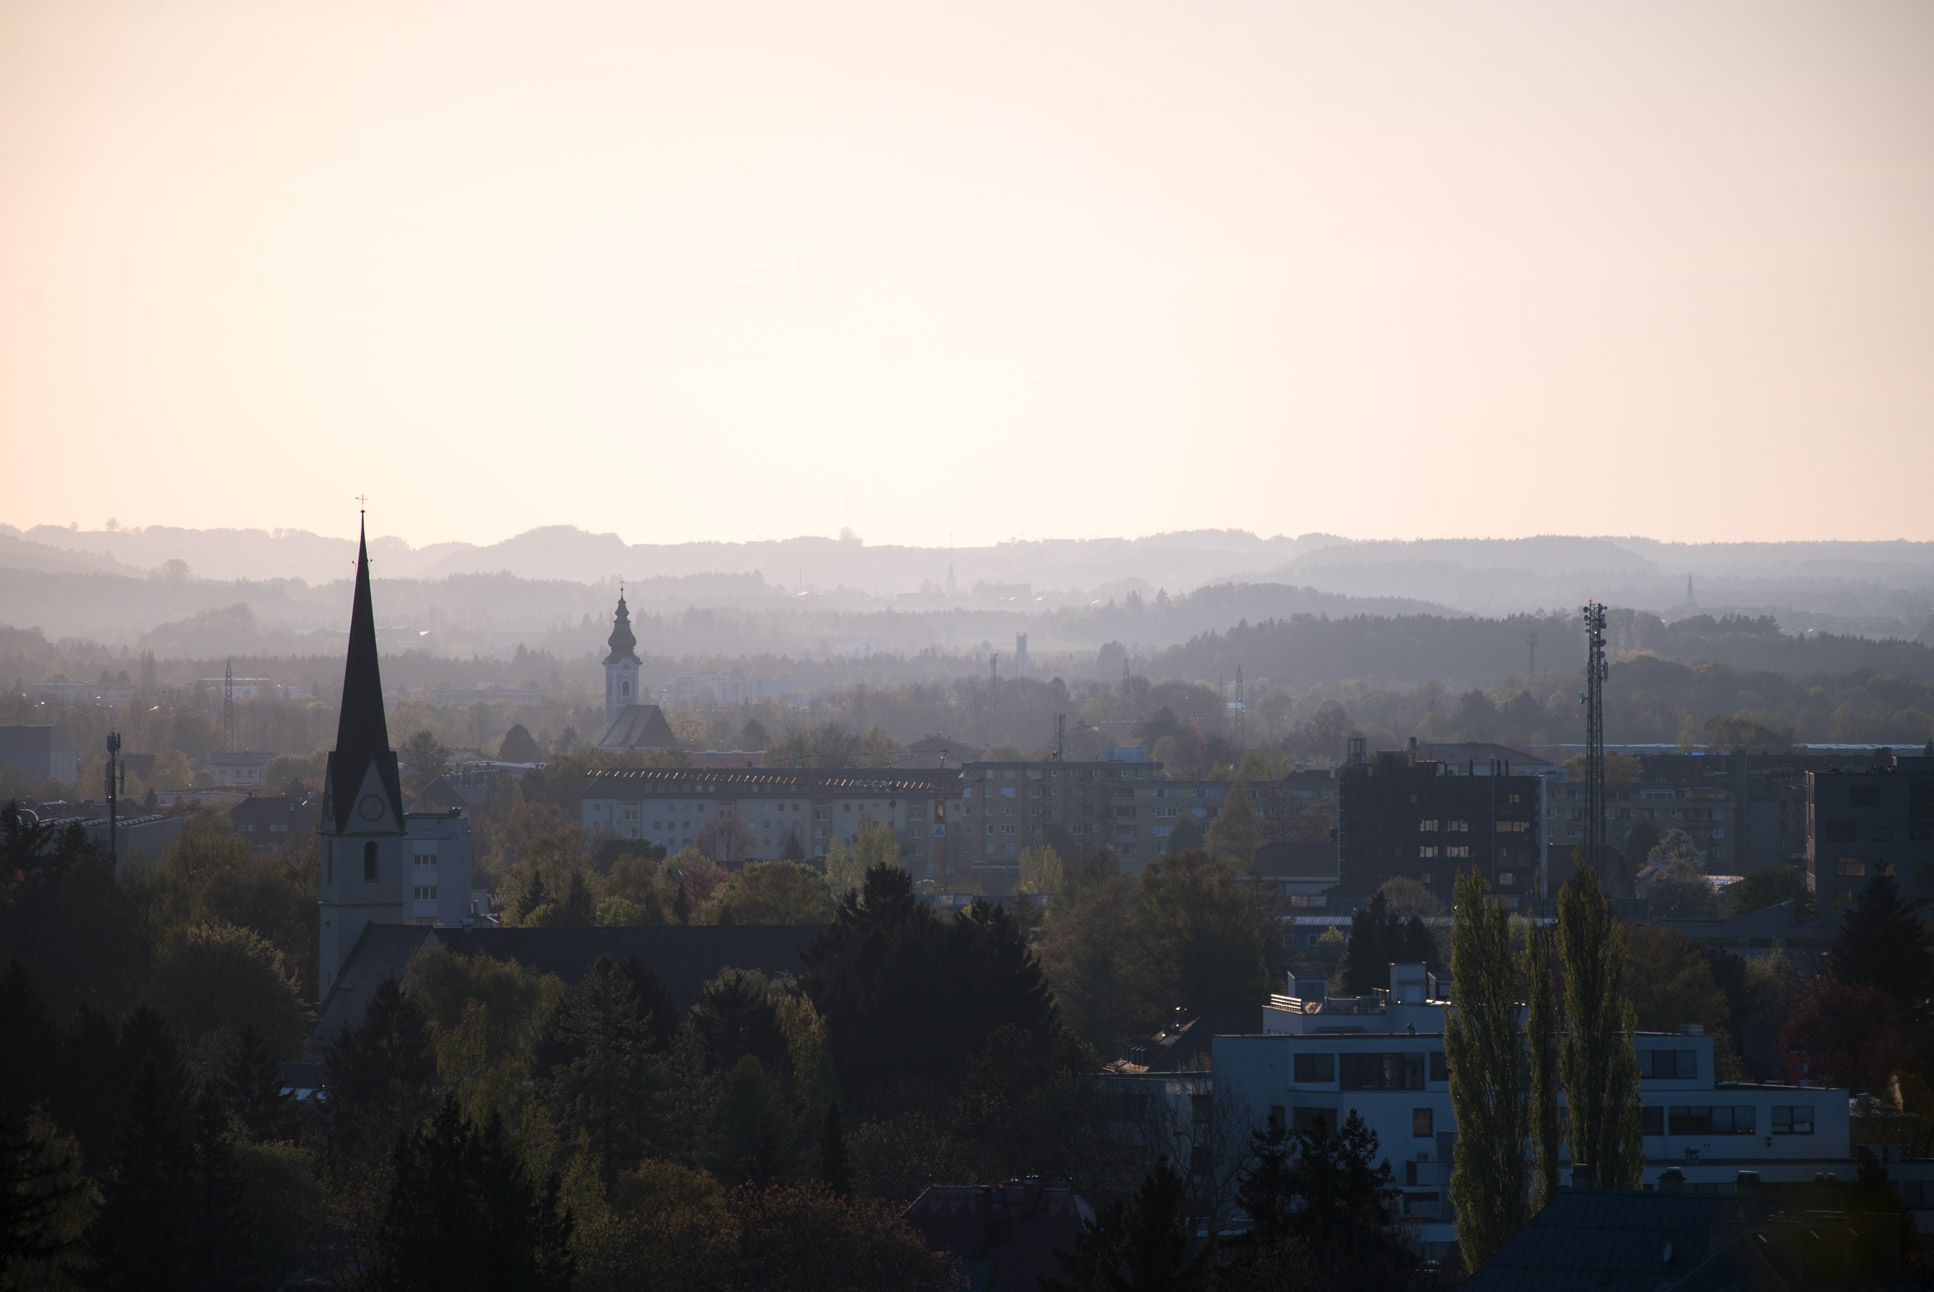 Photo by Pascal Sommer - View from Mönchsberg, Salzburg